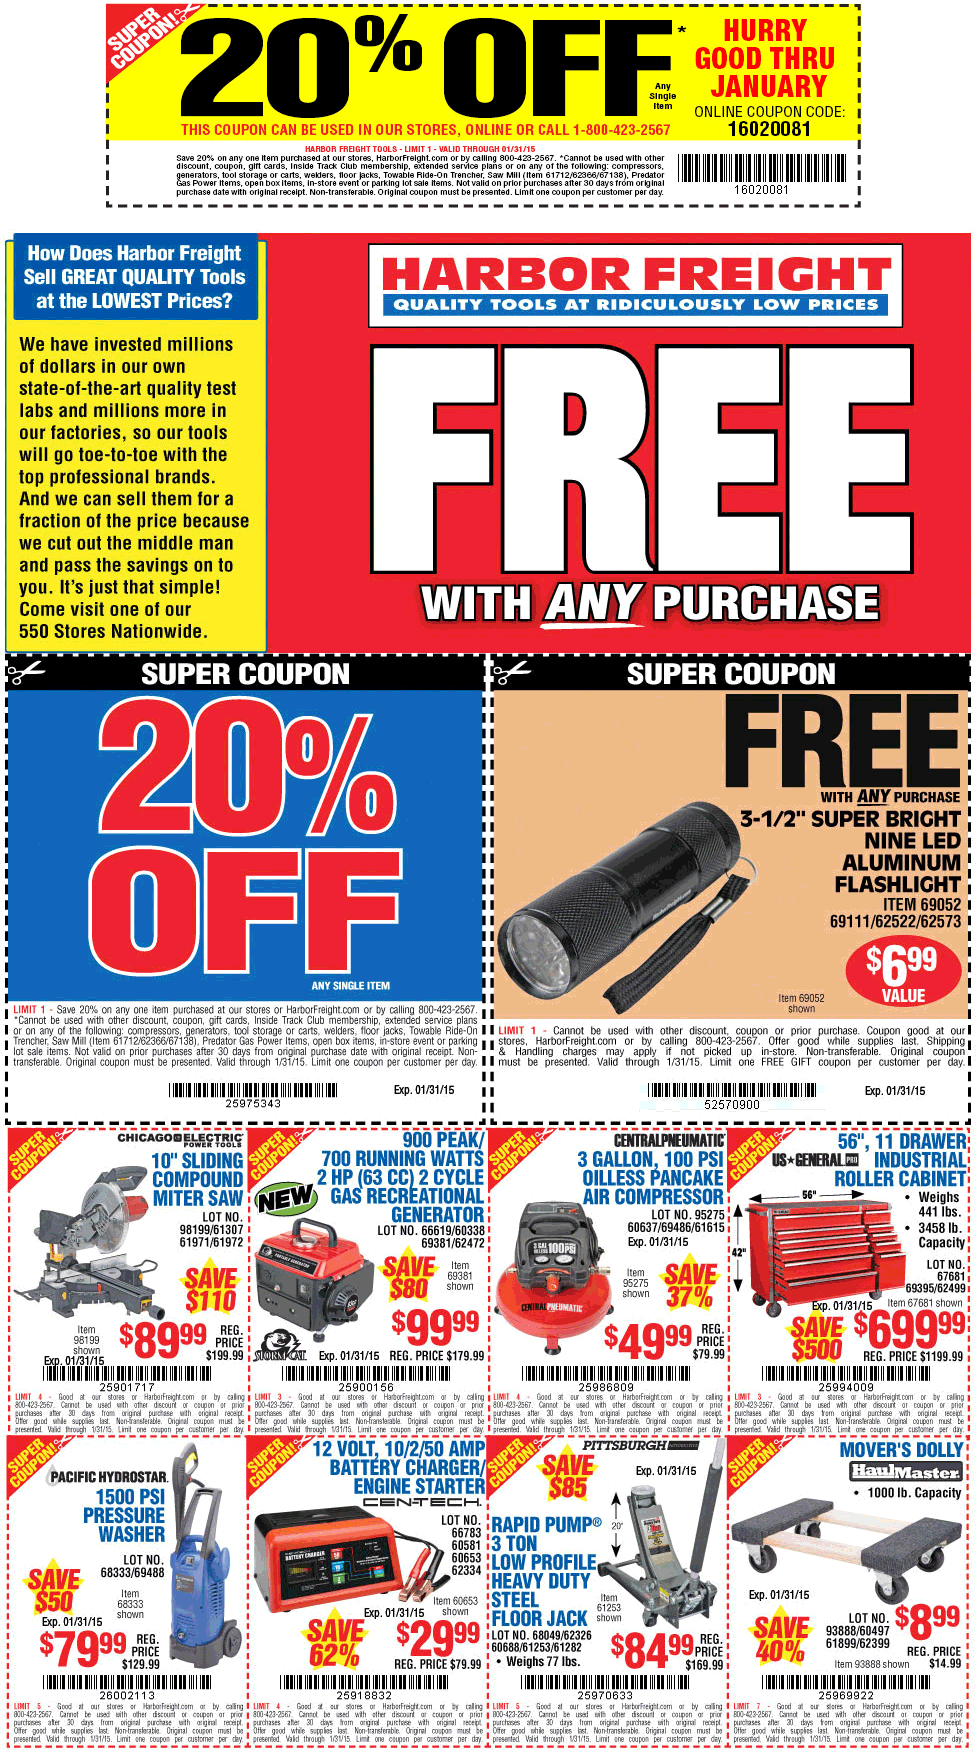 20 Coupon For Harbor Freight Tools Wicked Ticketmaster Coupon Code